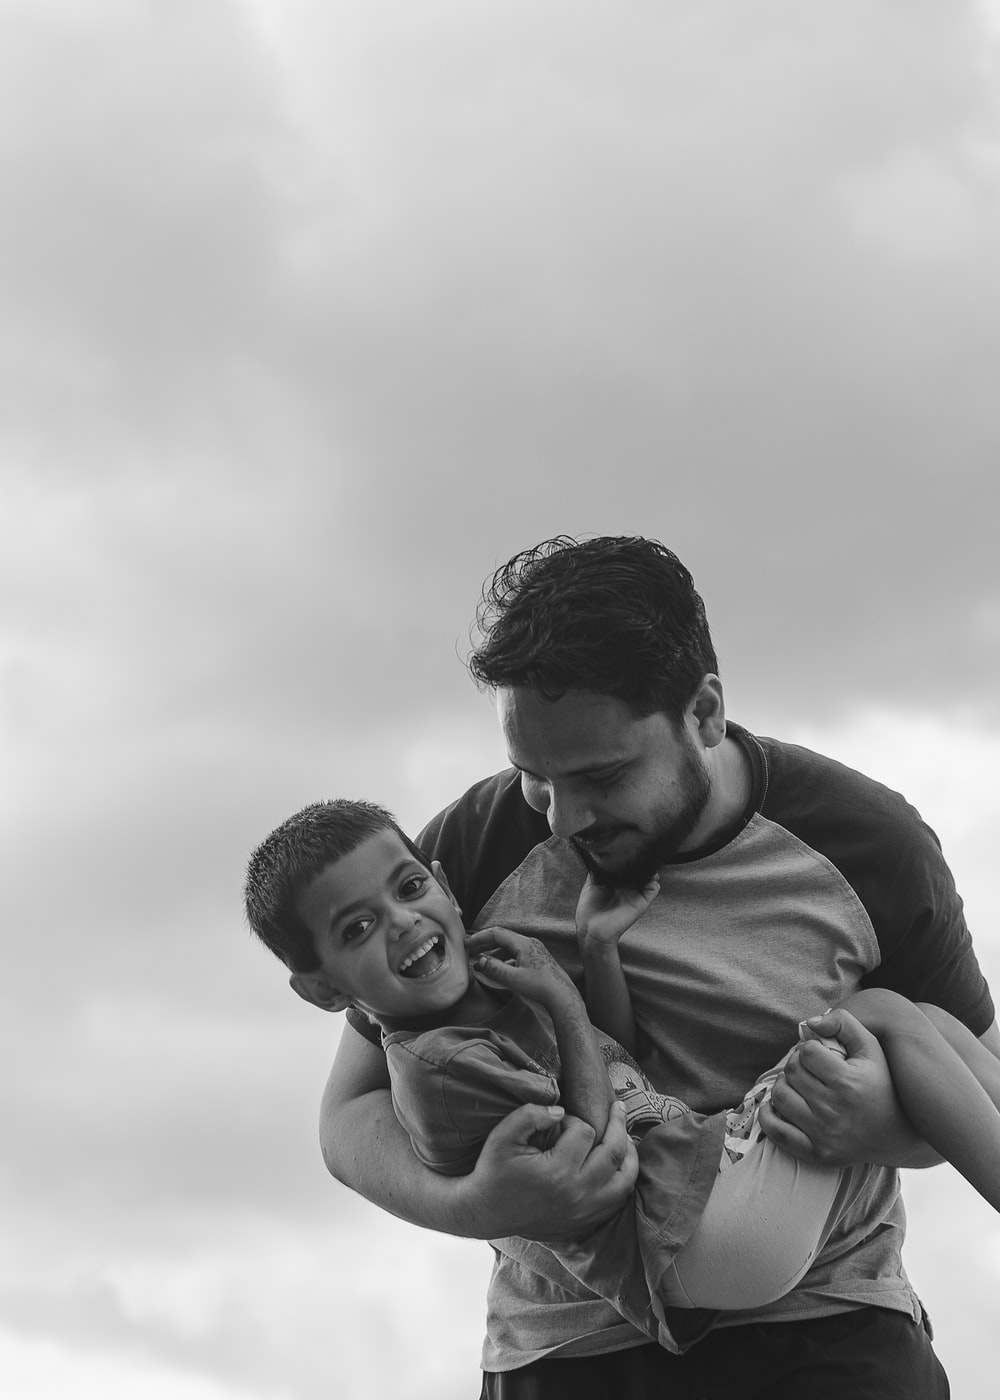 man in black long sleeve shirt carrying baby in gray scale